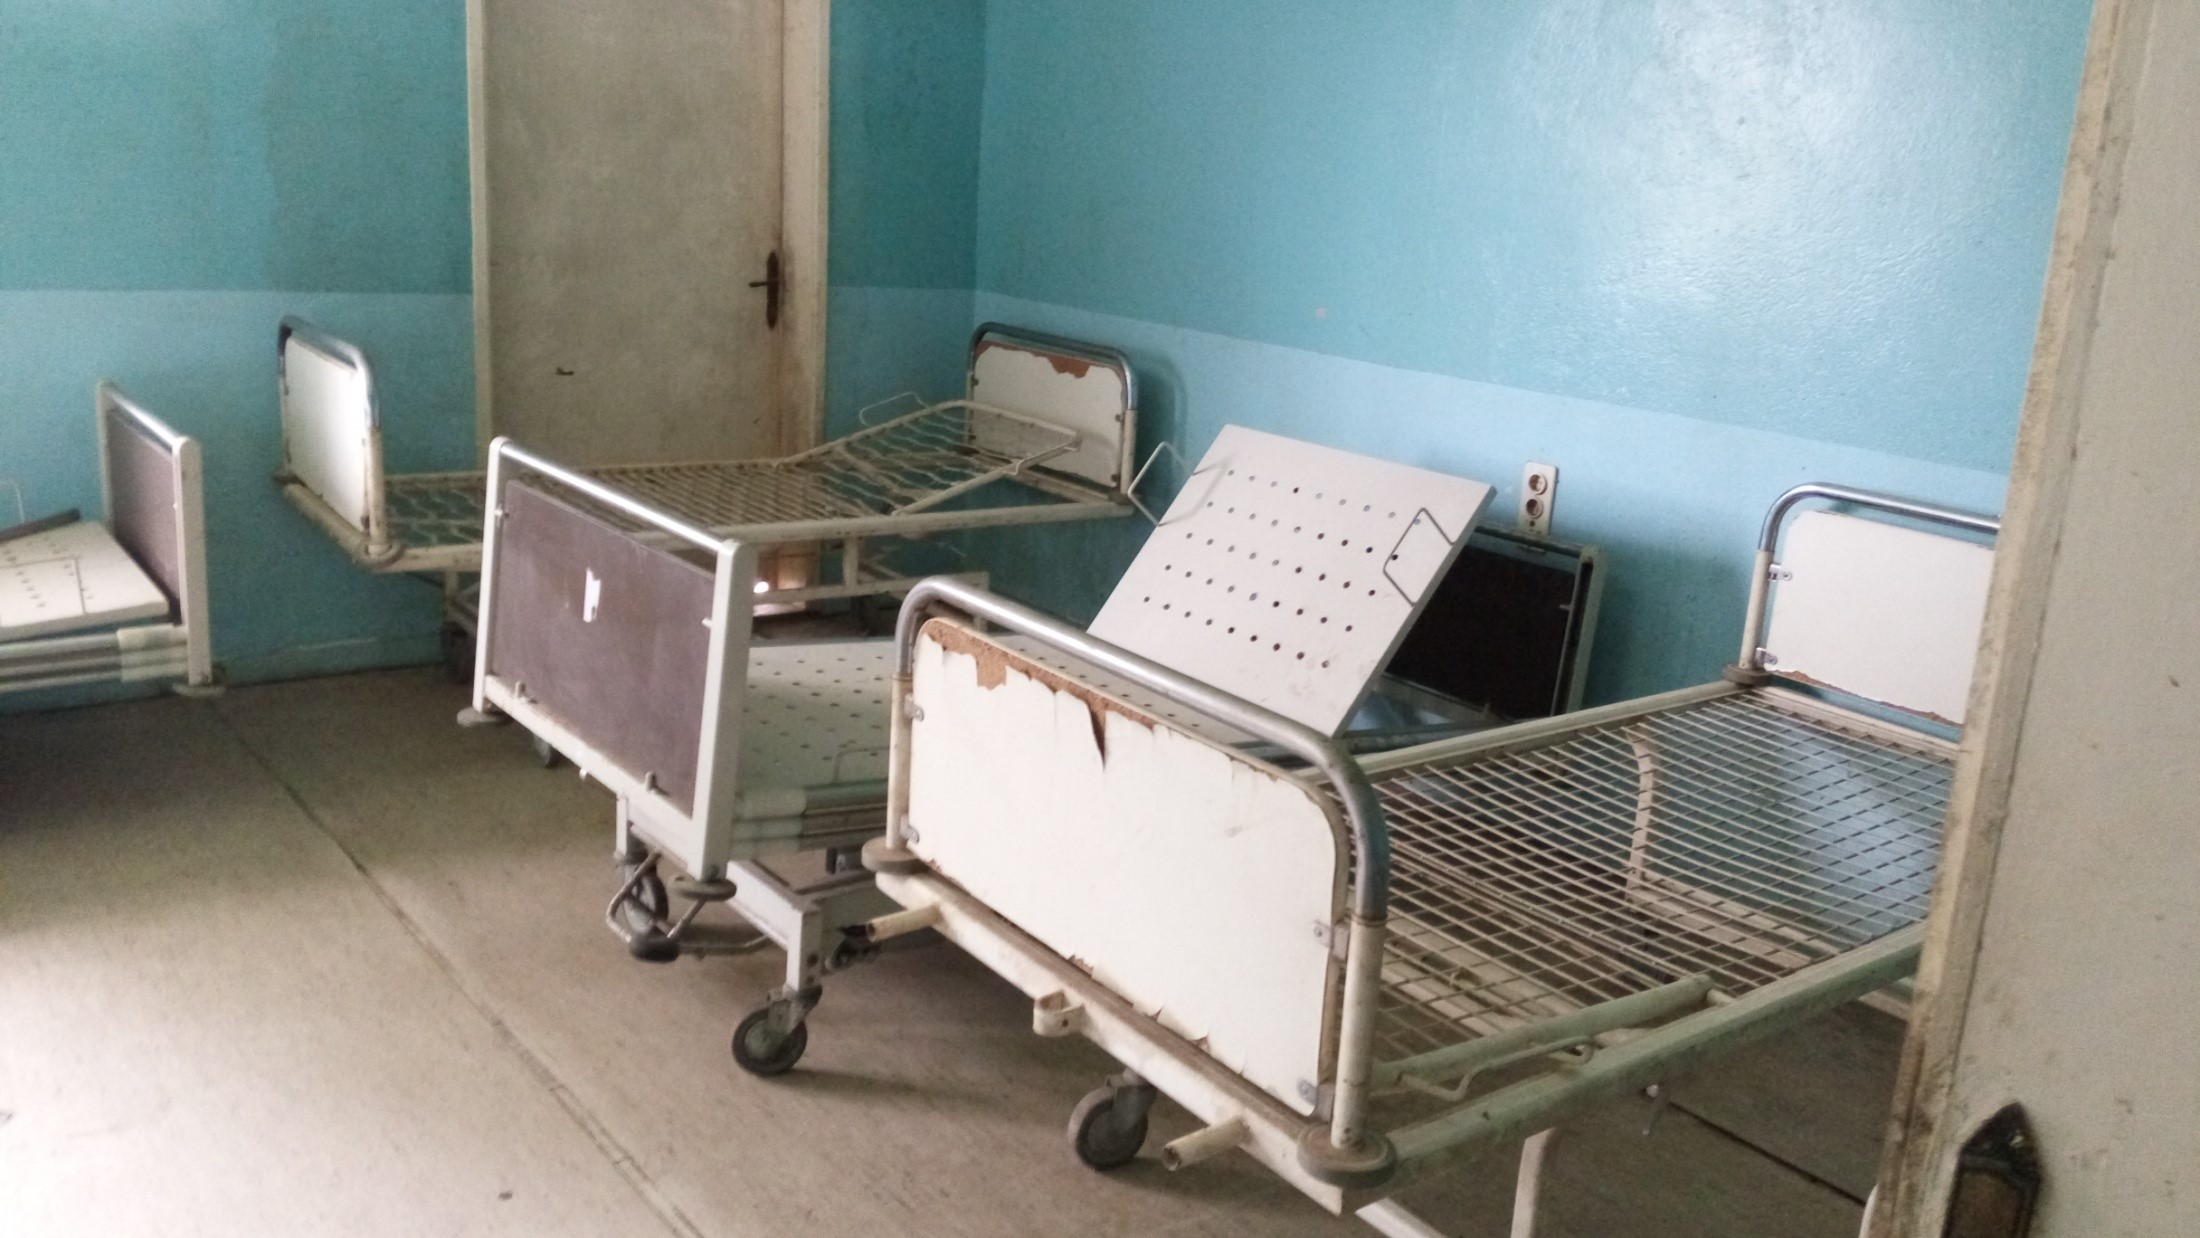 Empty metal beds in a hospital room.